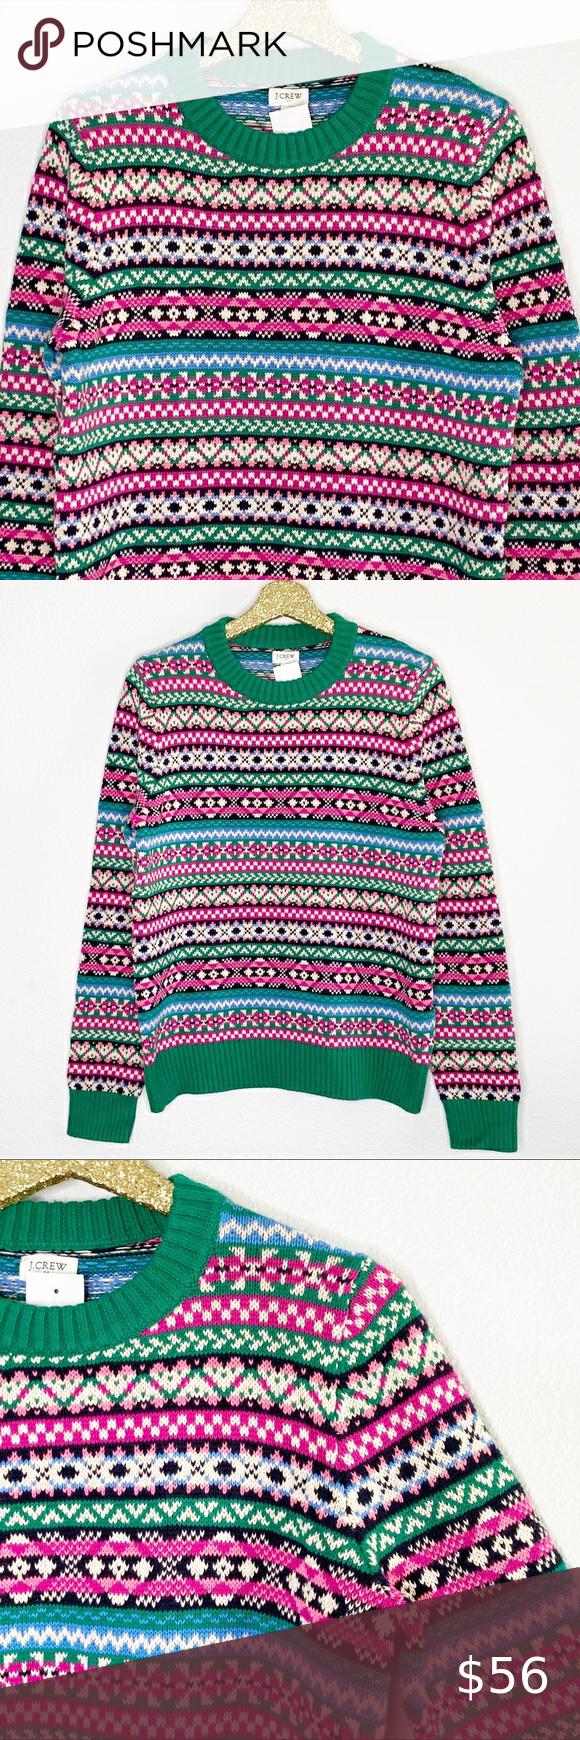 """J. Crew Factory Fair Isle Nordic Print Sweater M -Green, blue and pink allover fair isle Nordic style print -Cotton sweater knit -Green ribbed crewneck and long sleeves  -Women's size M, approximate measurements Underarm to underarm: 20.5"""" Length: 25.25""""  -New with Tags Condition NWT Never worn  J81 J. Crew Factory Sweaters Crew & Scoop Necks"""